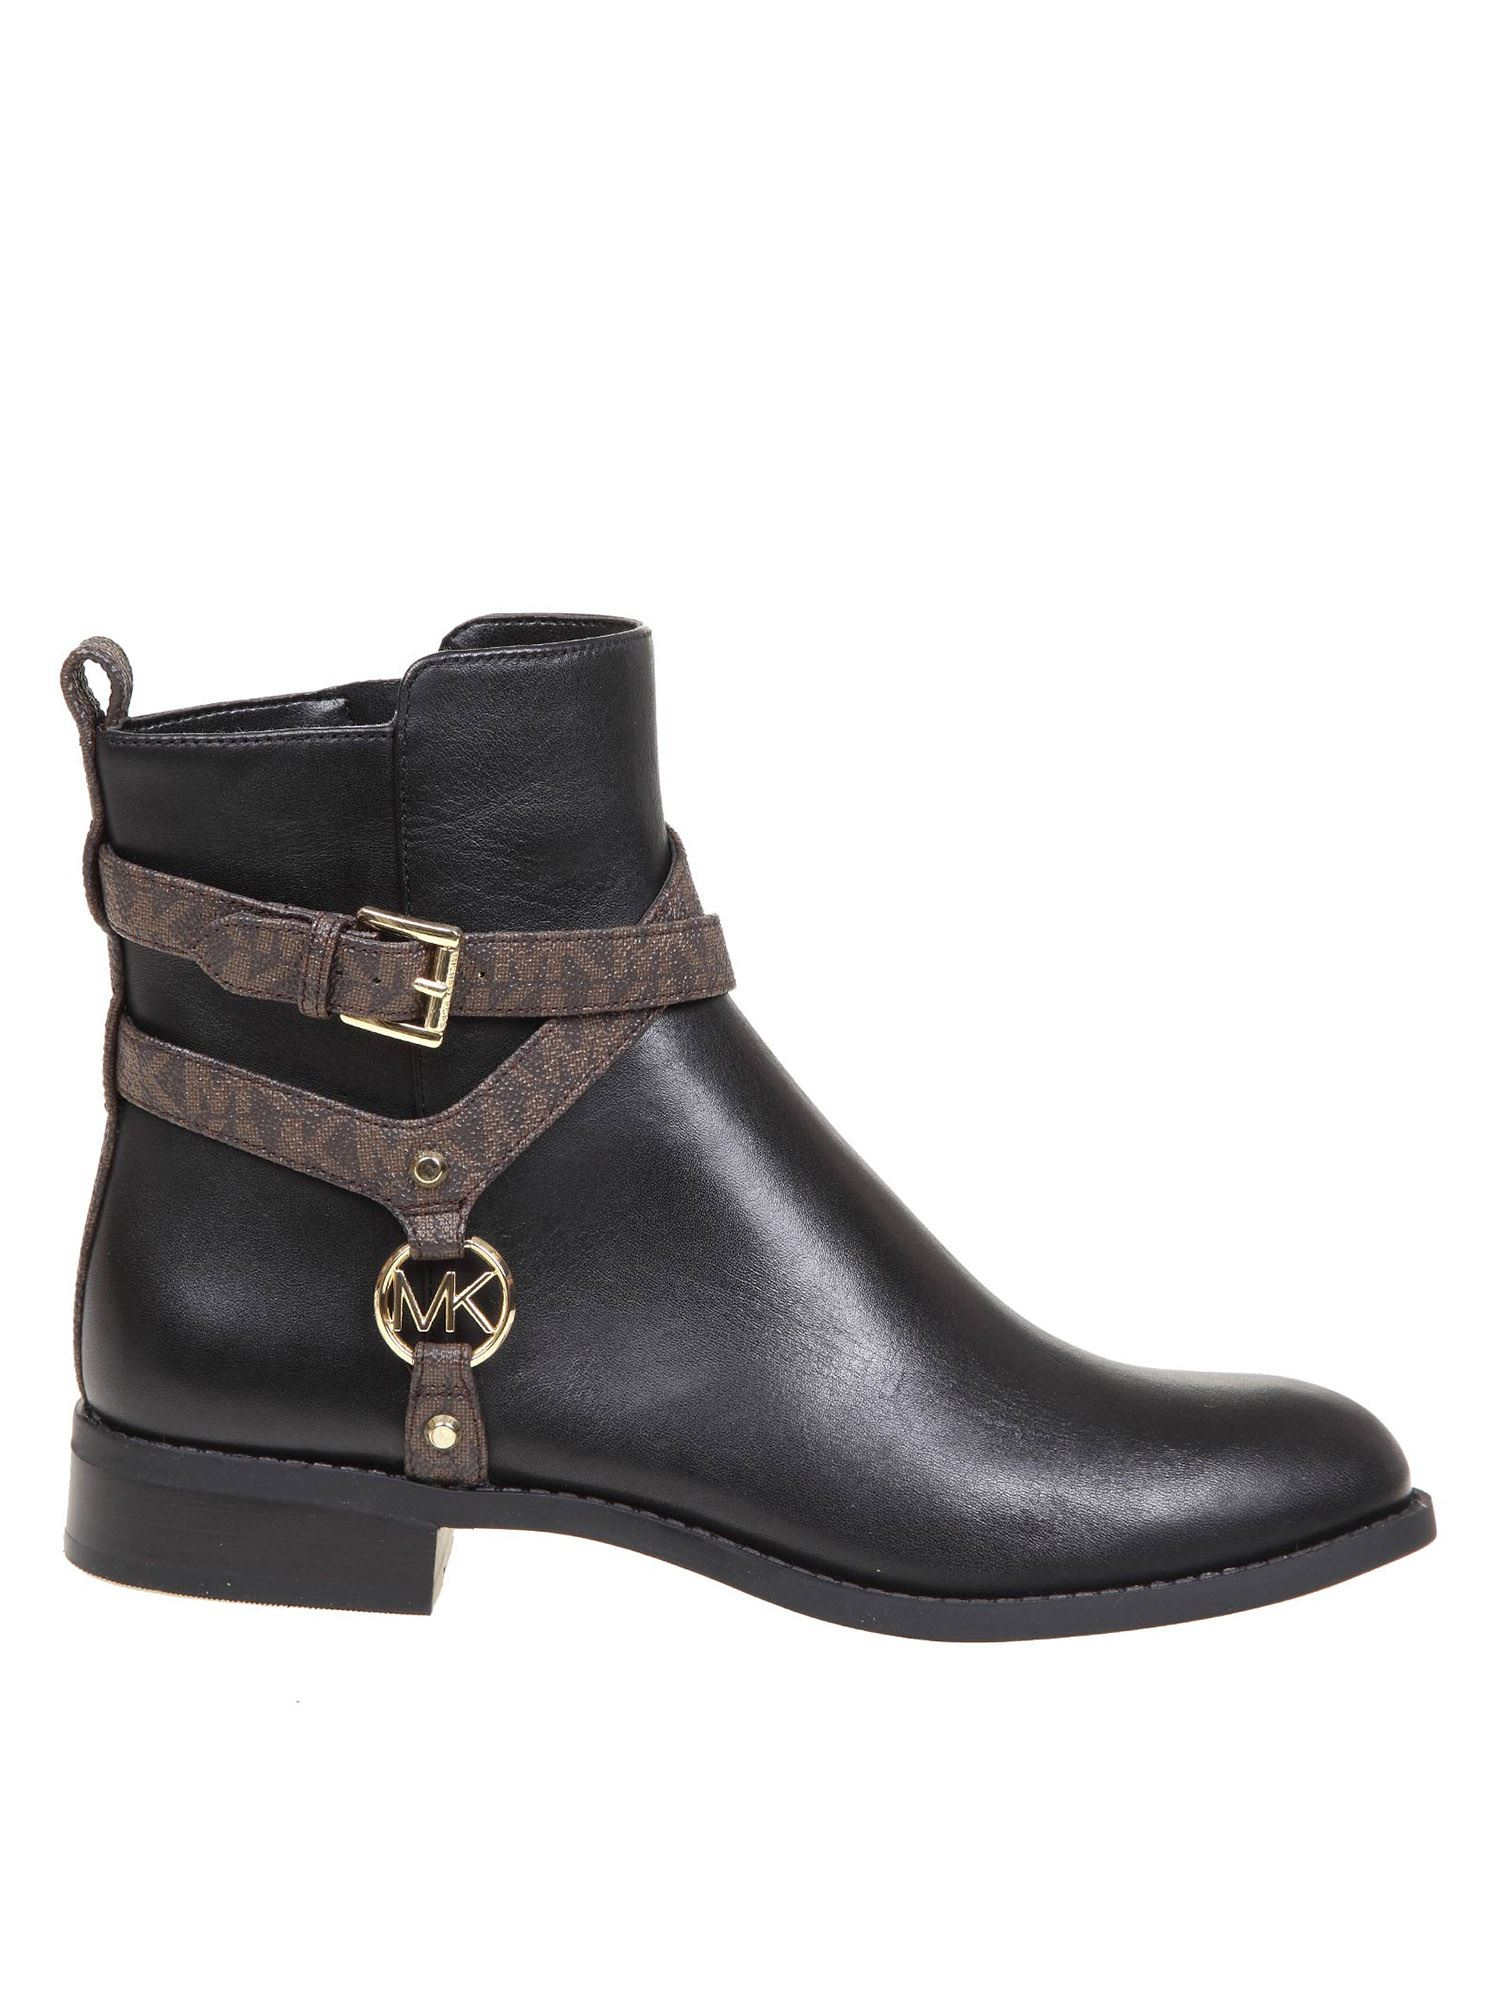 Michael Kors PRESTON STRAP ANKLE BOOTS IN BLACK AND BROWN